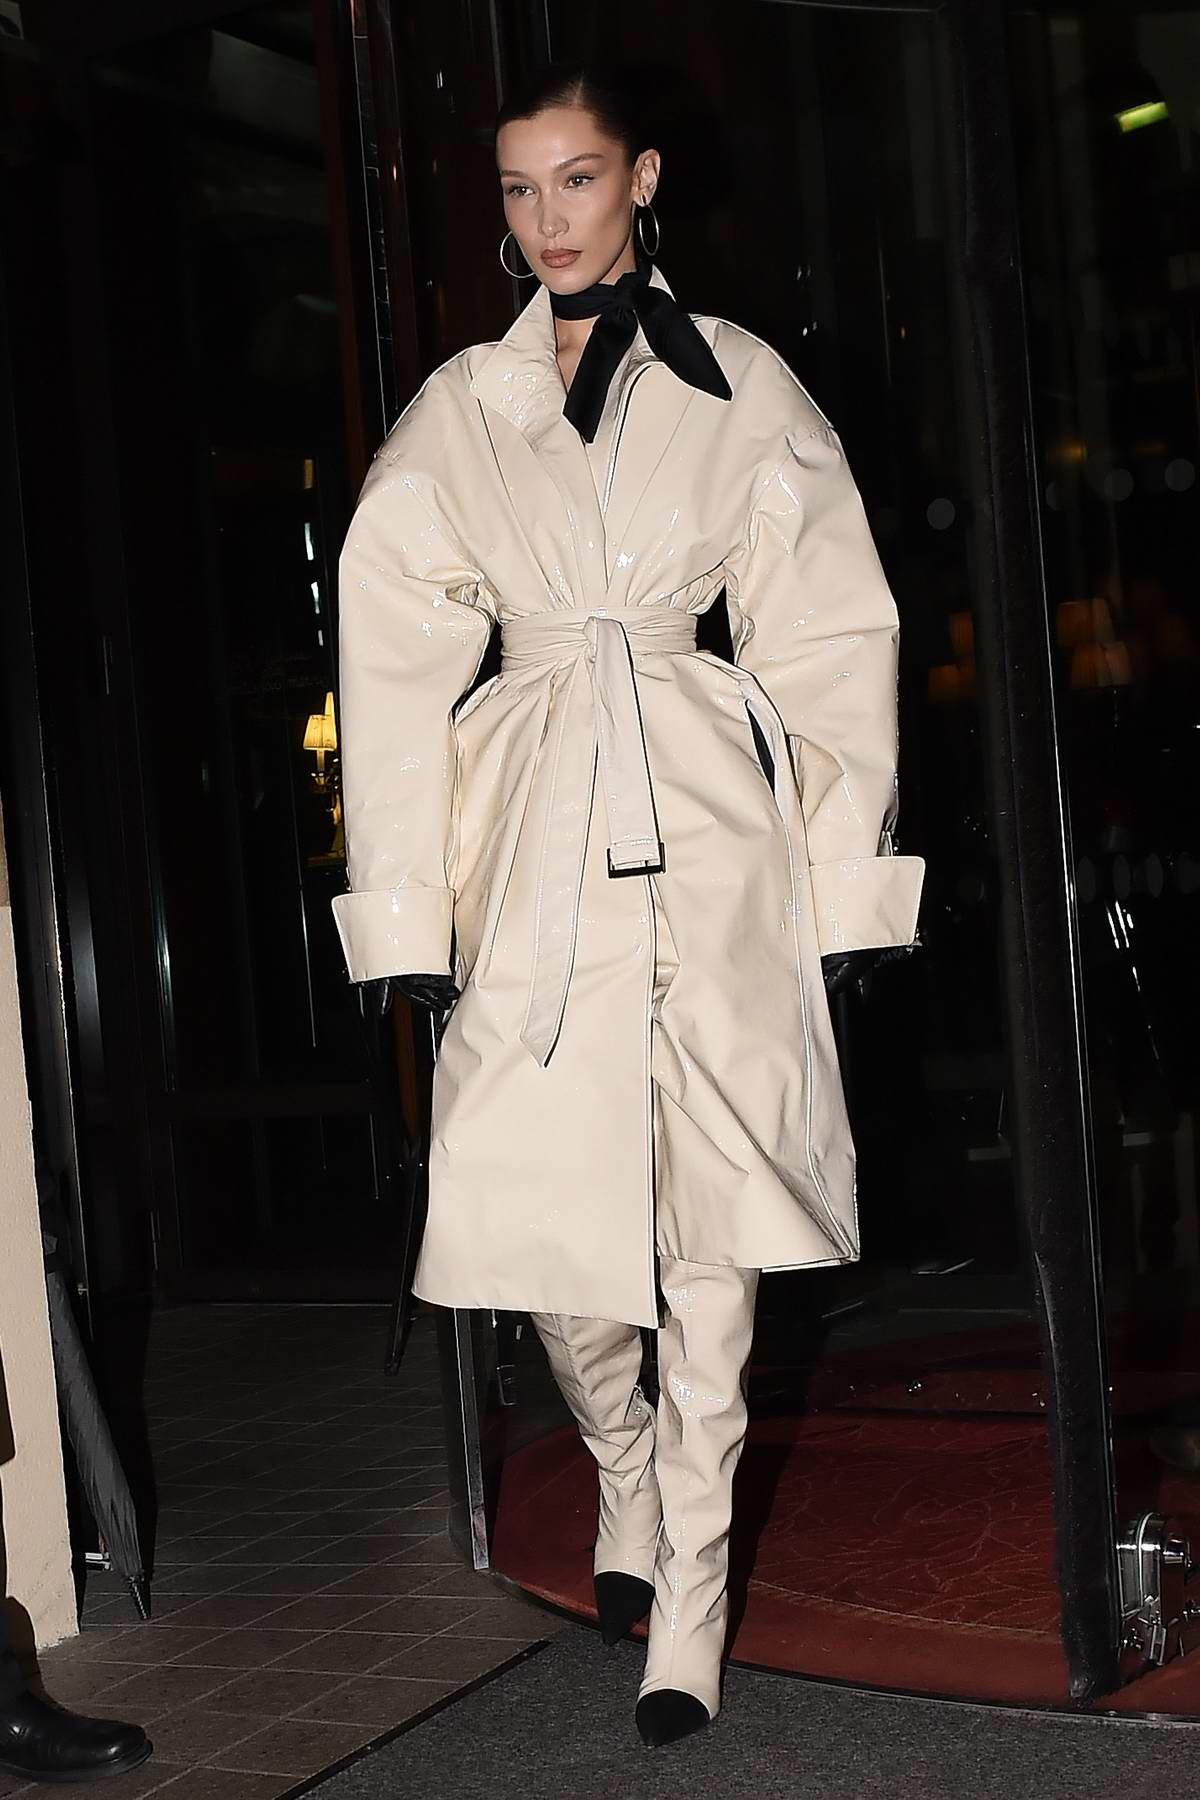 Bella Hadid wears an all beige ensemble as she heads to the Louis Vuitton party in Paris, France